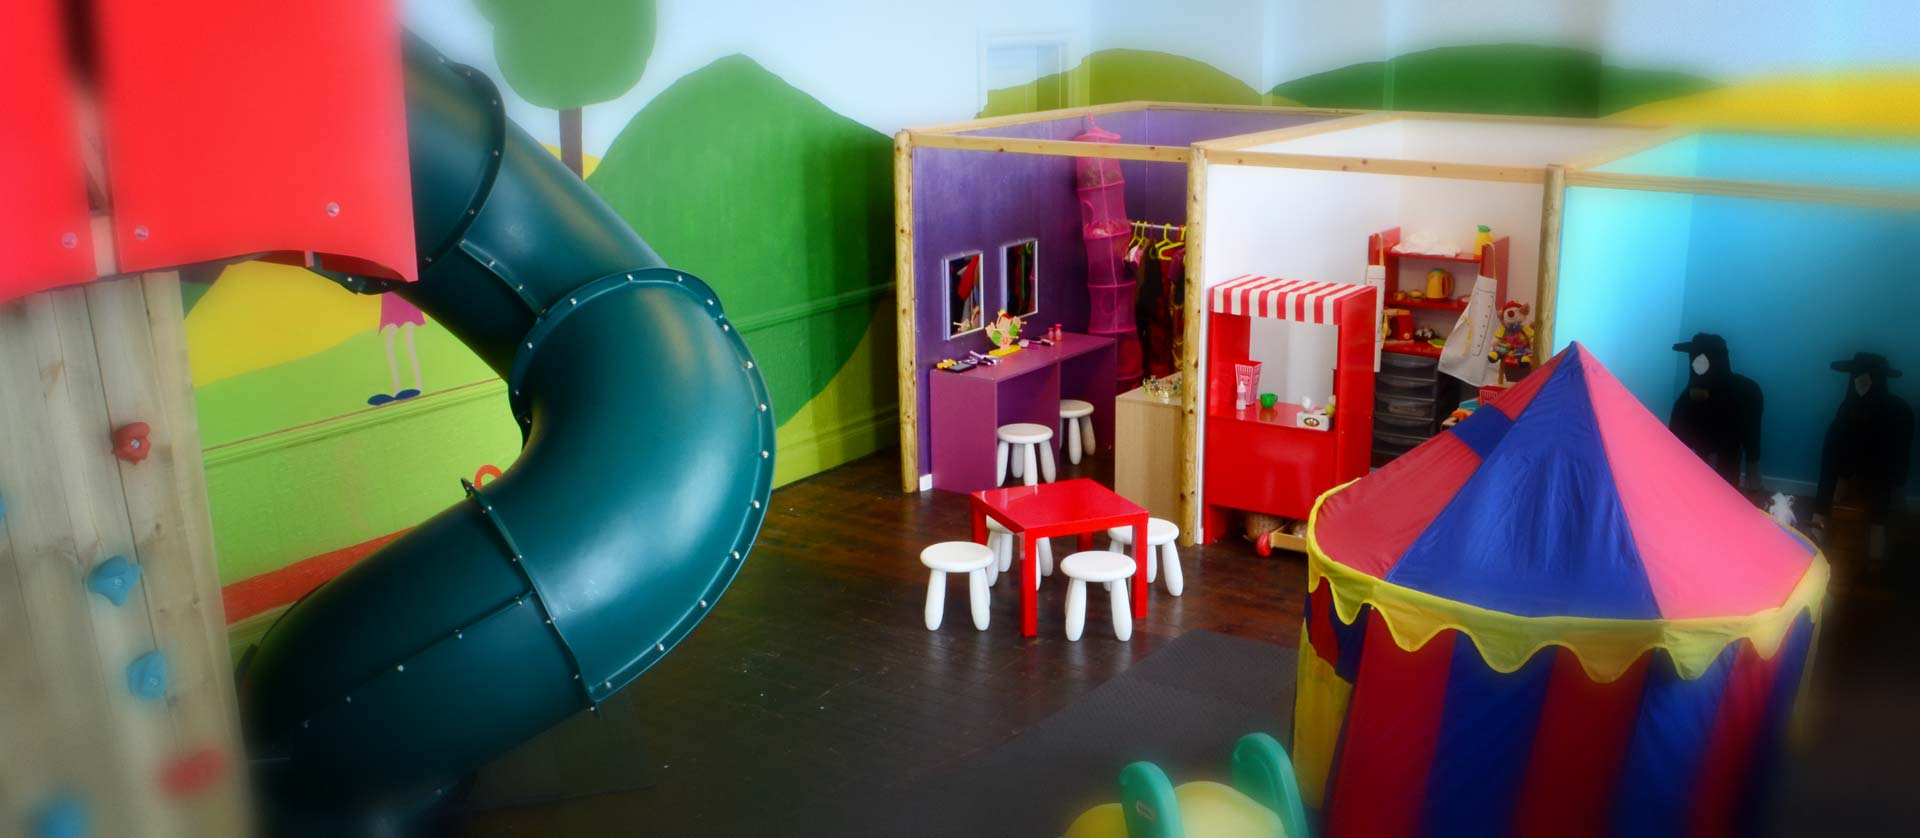 Magical Circus fantasy playroom.